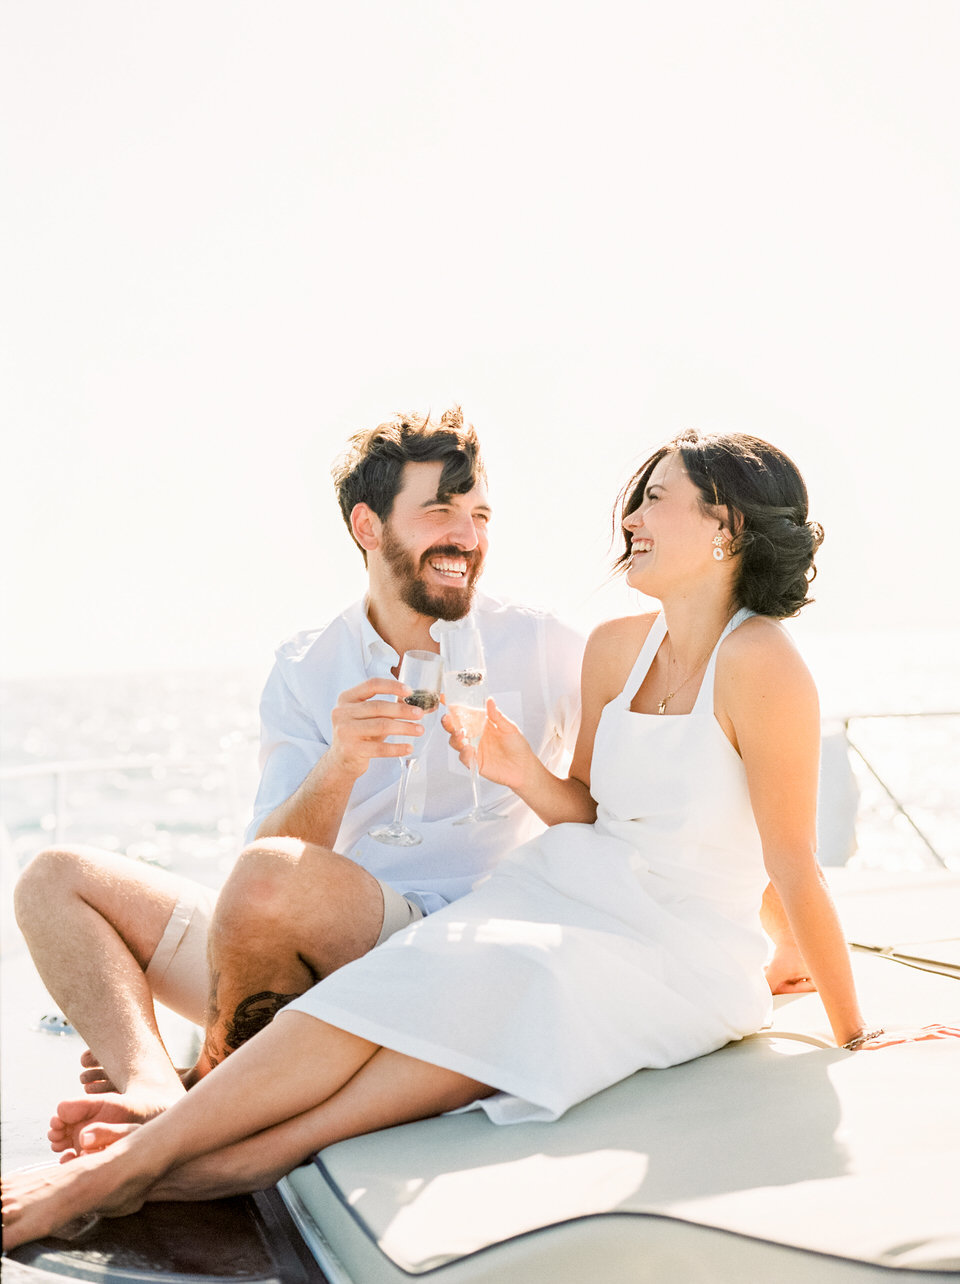 Luxury-Yacht-Engagement-Session-in-Algarve-Portugal-021